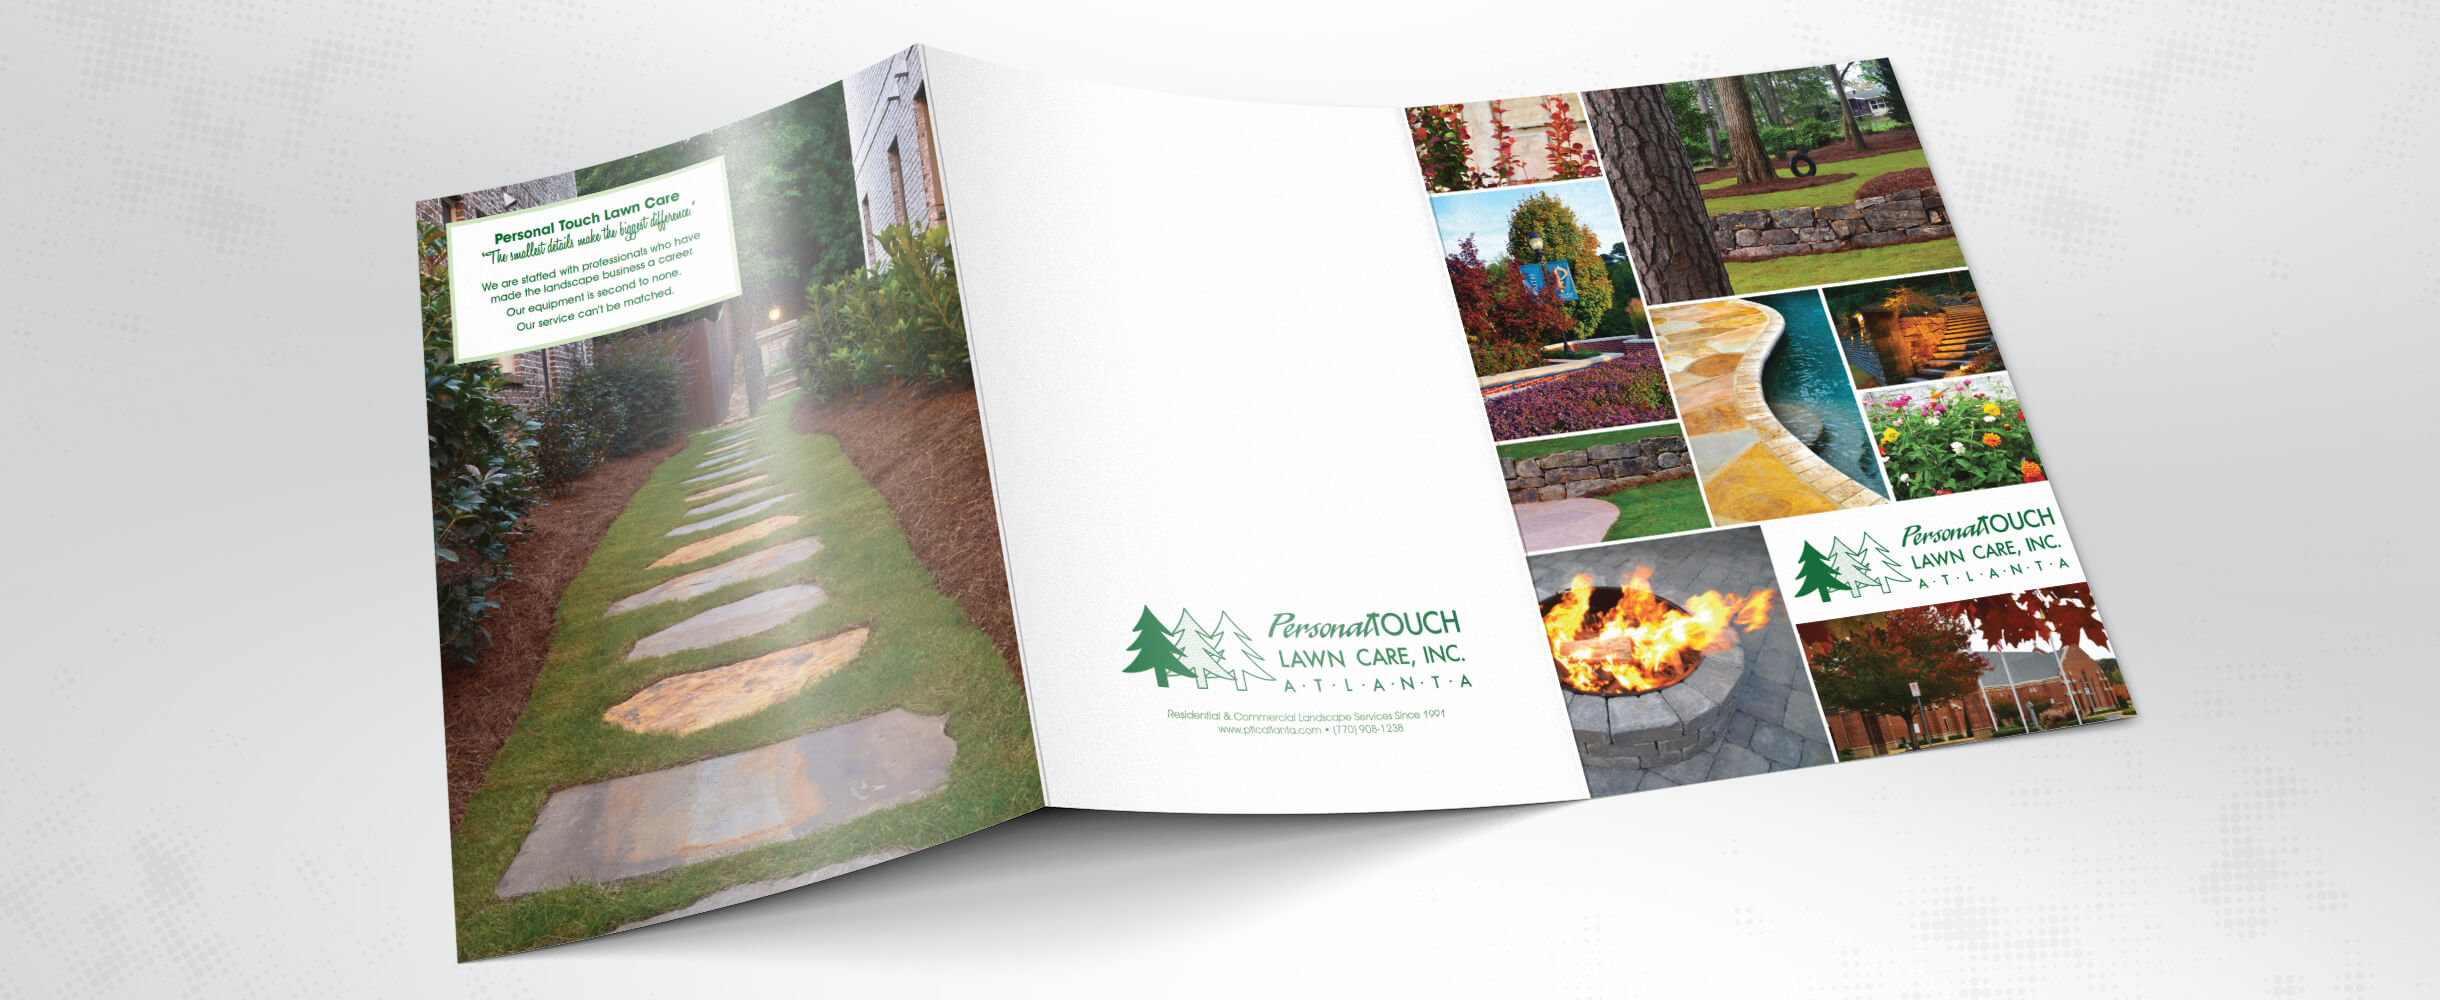 Personal Touch Lawn Care Atlanta brochure